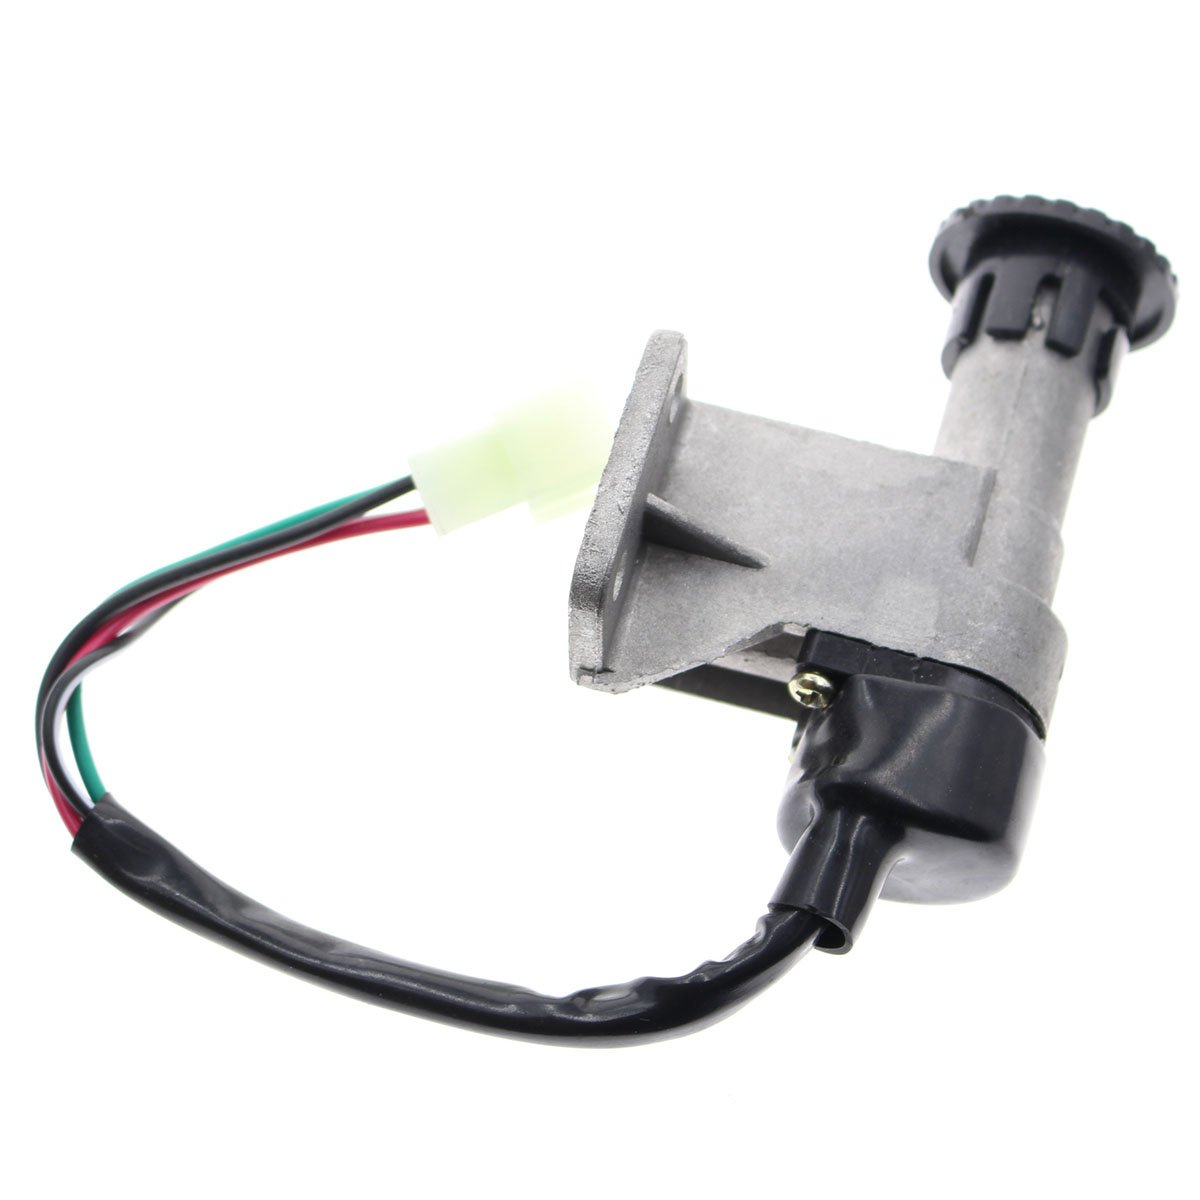 Autokay Ignition Set For Vip Champion Gmi 102 Chinese China Made Atv Wiring Scooter Automotive